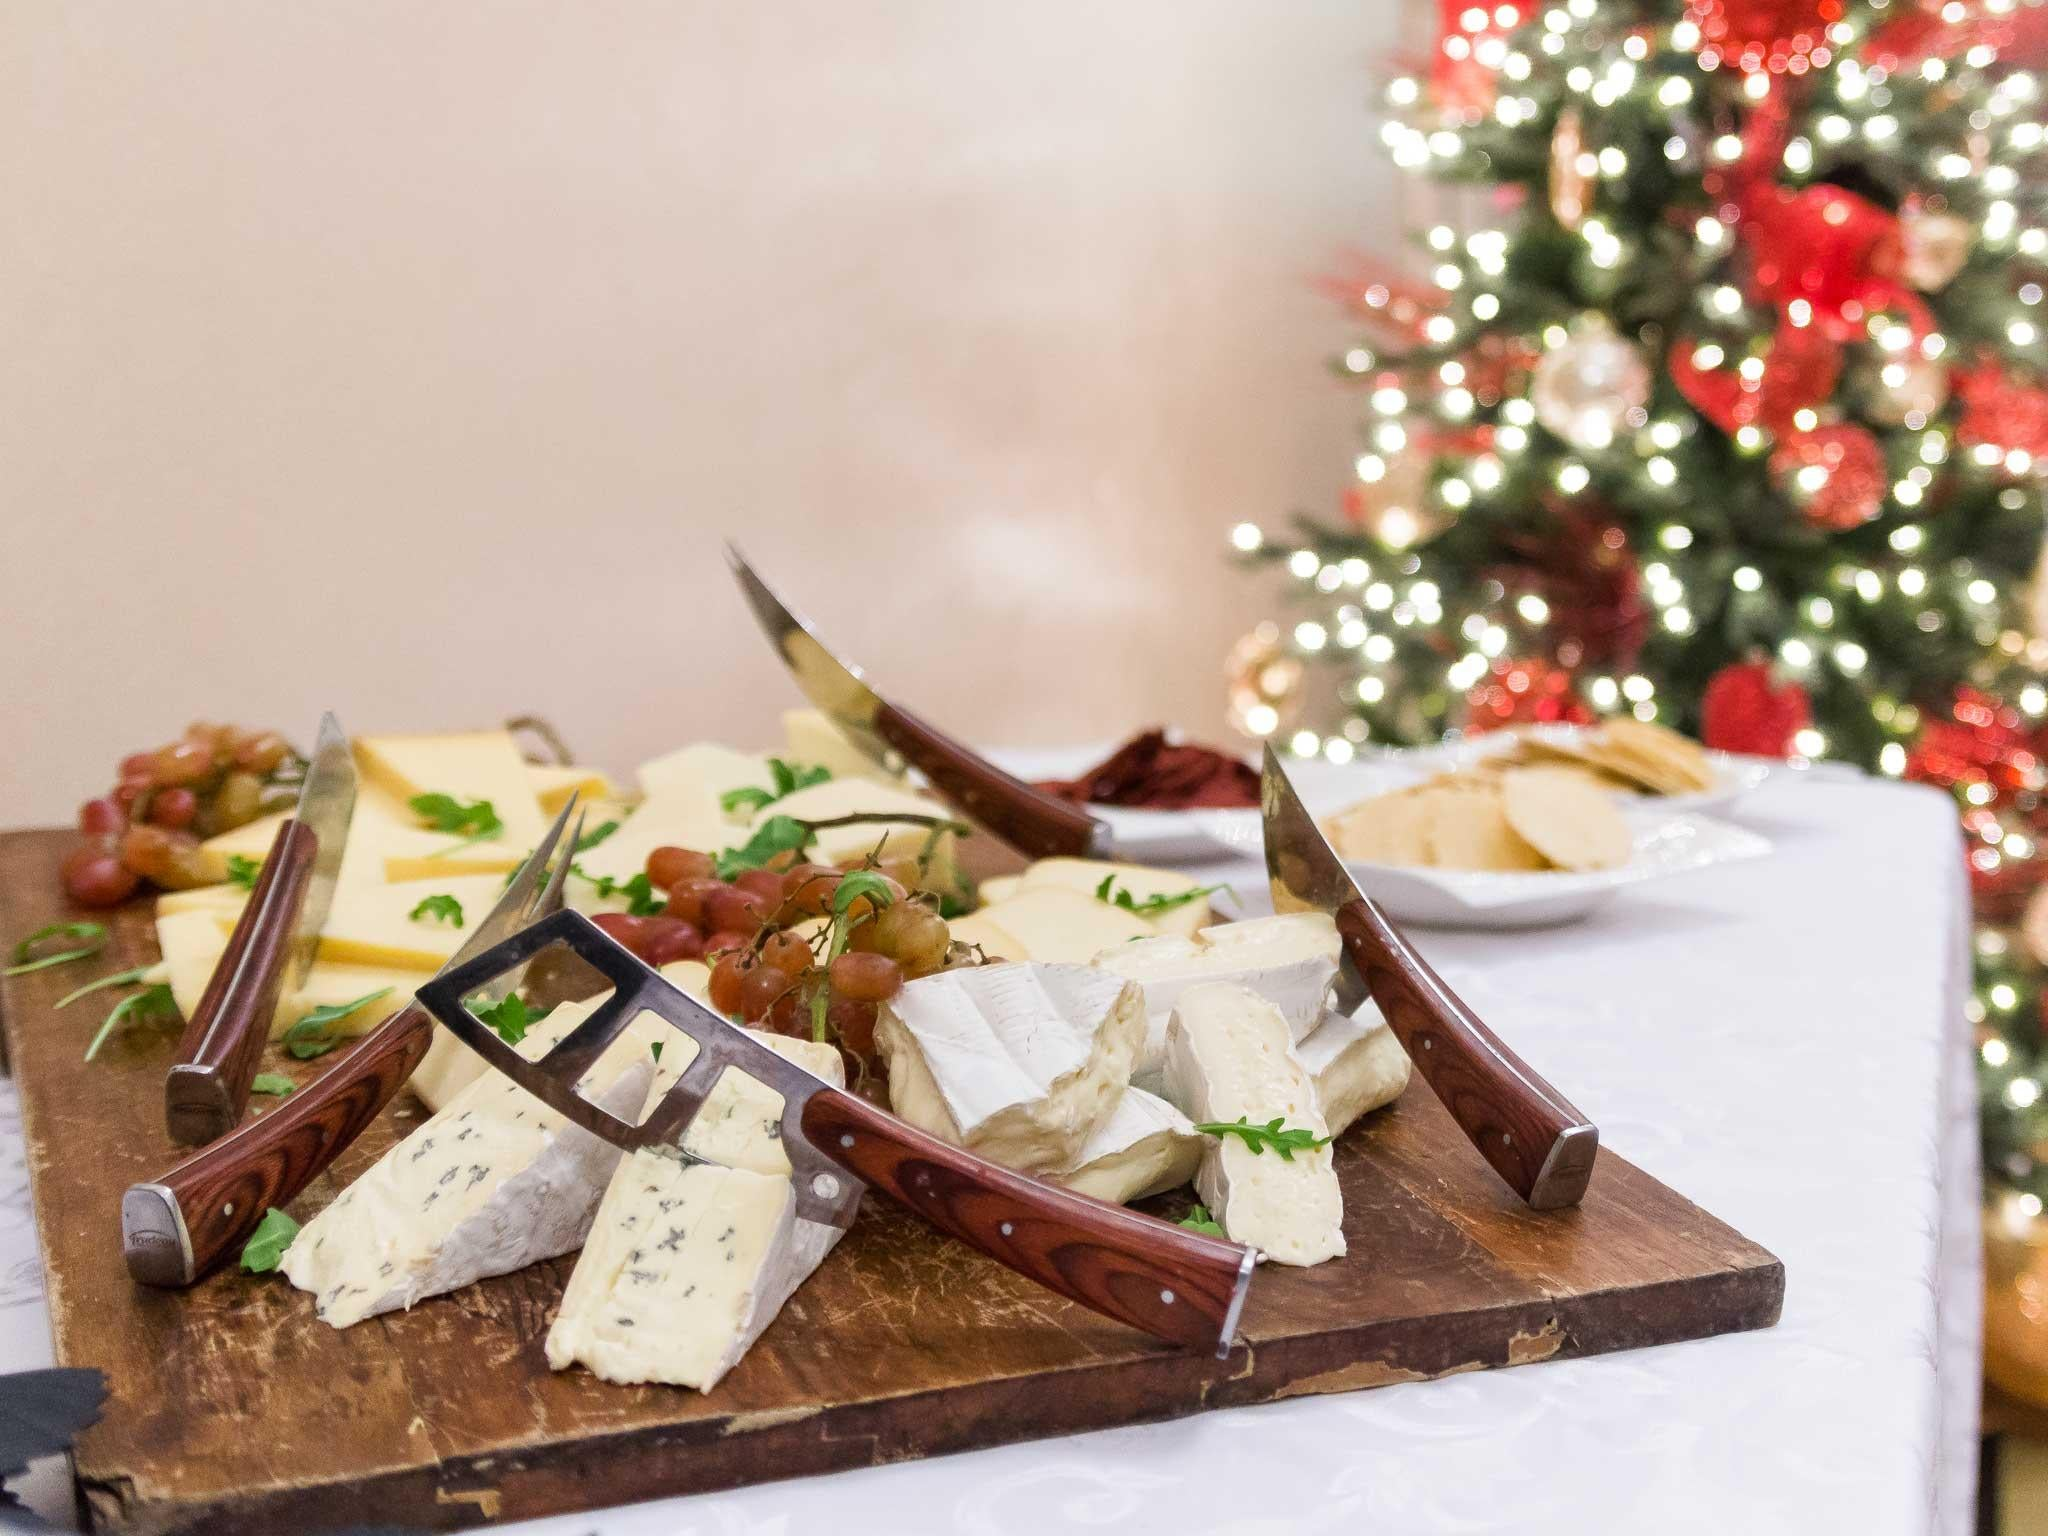 Best Cordless Vacuum Uk 2017 >> 8 best Christmas cheese boards | The Independent